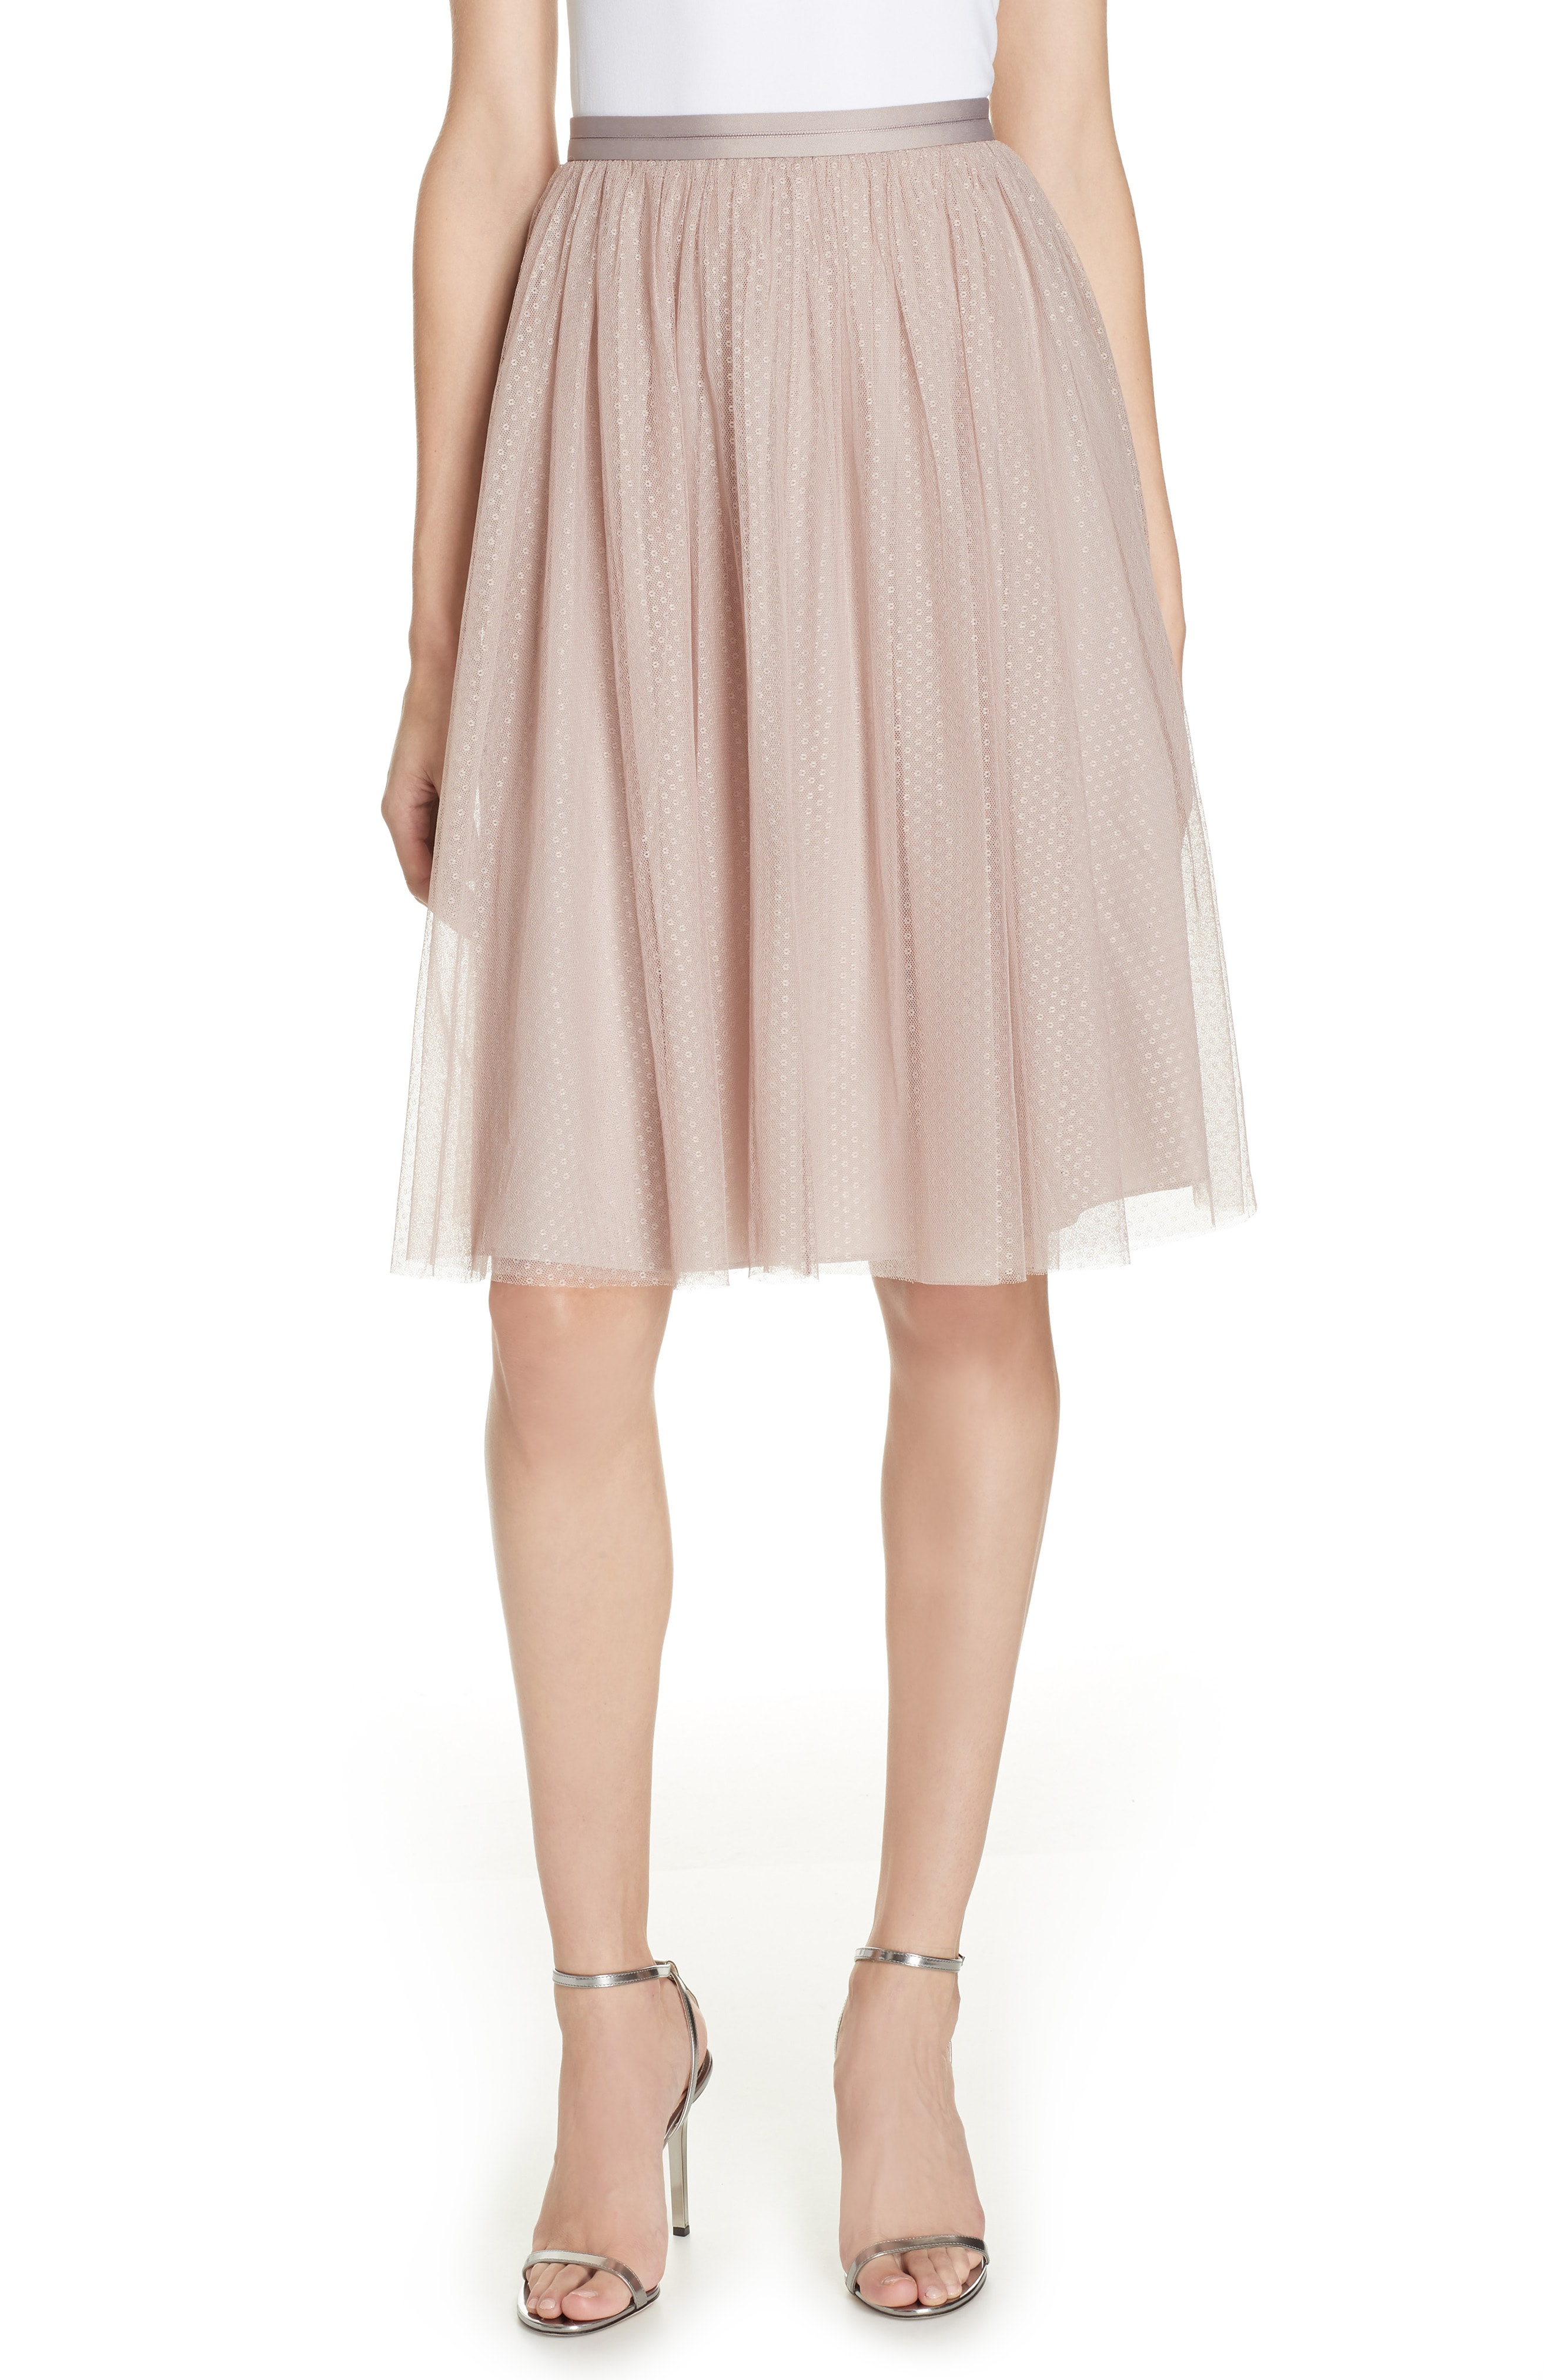 Needle & Thread Dotted Tulle A-Line Skirt